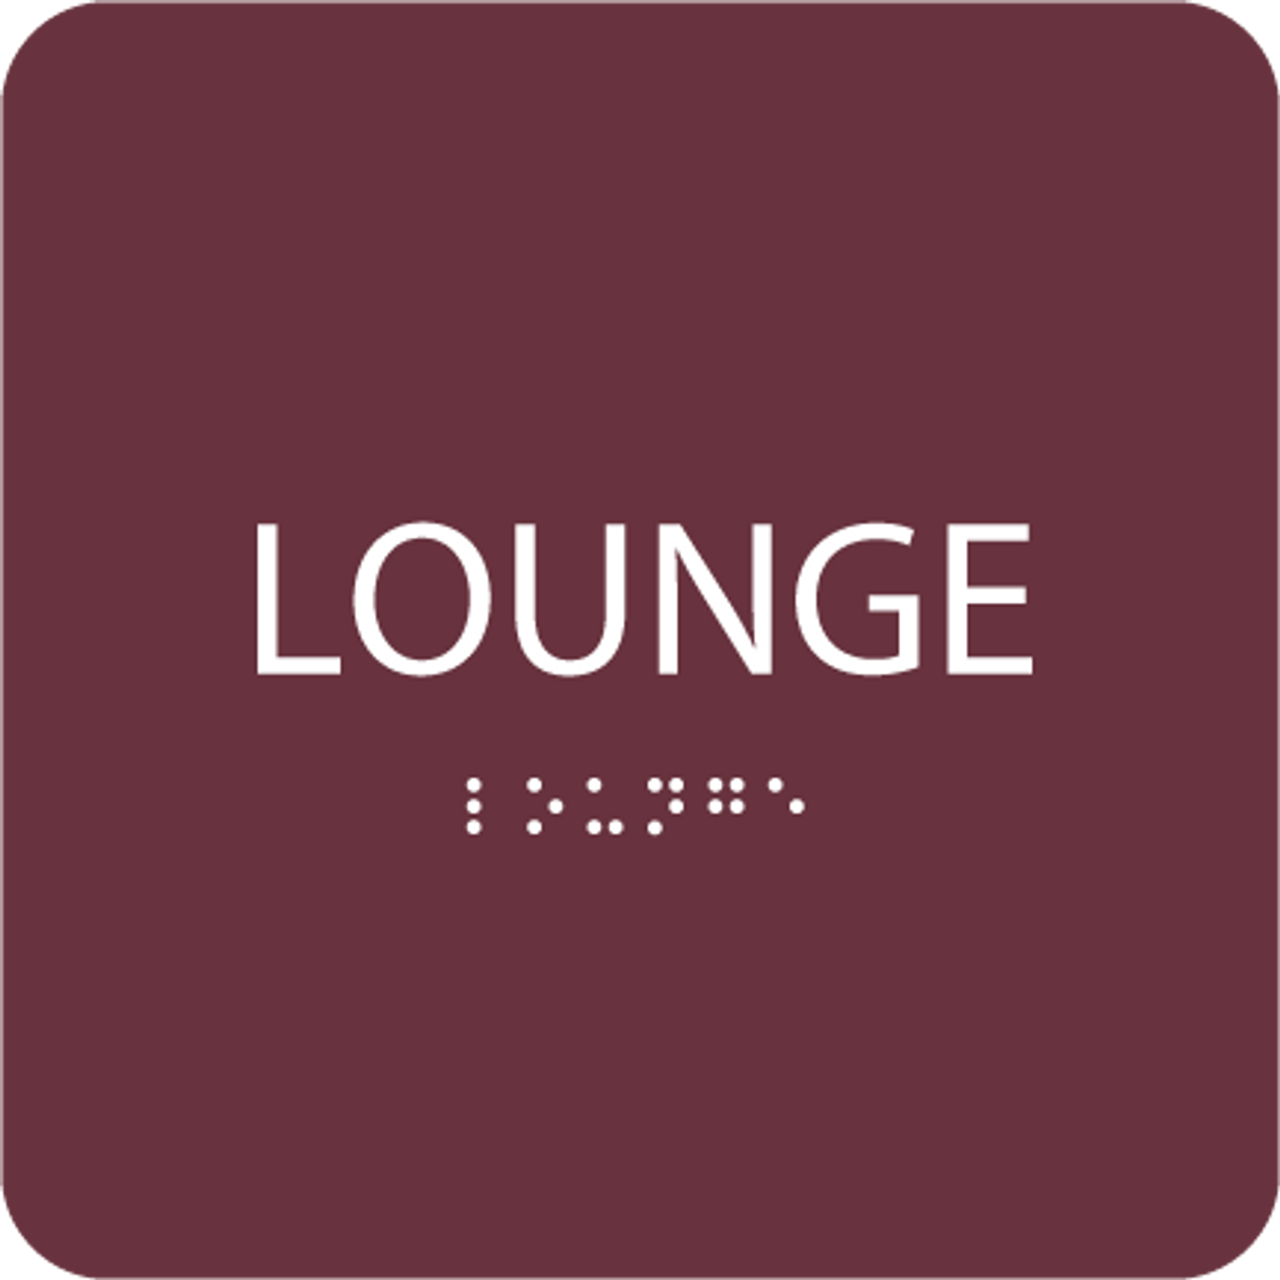 Burgundy Lounge ADA Sign